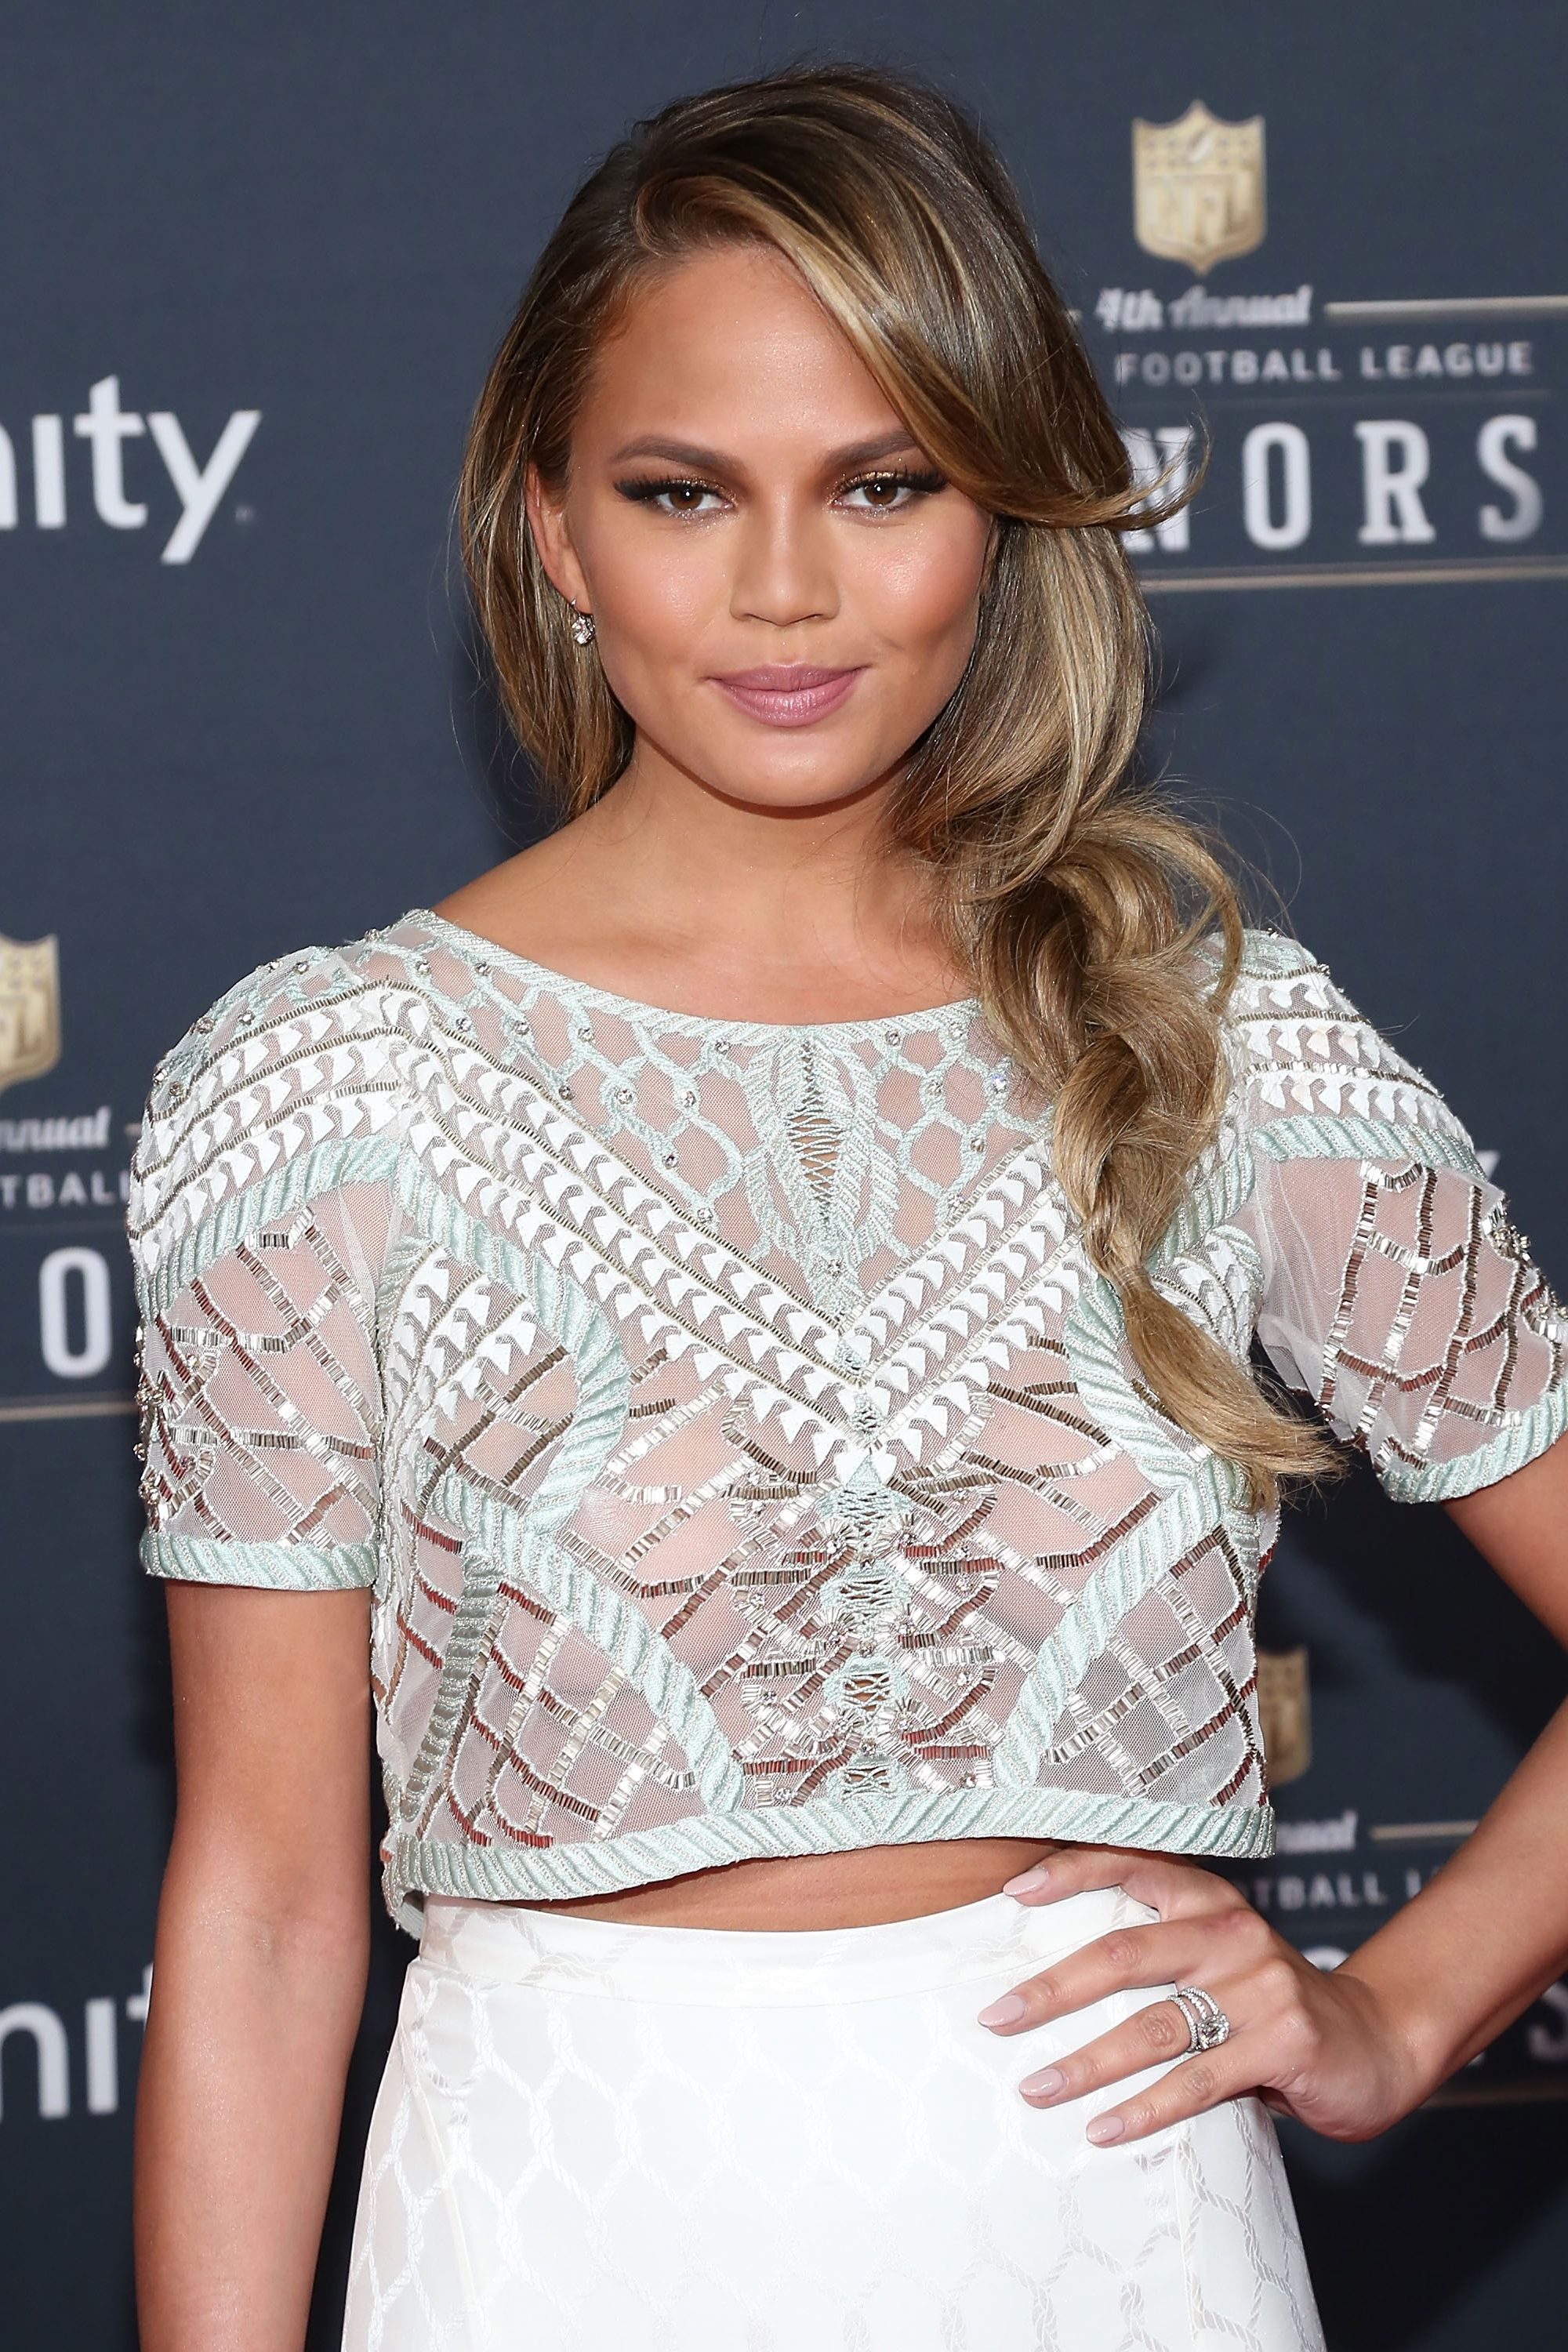 Chrissy Teigen showed up at the&nbsp&#x3B;2015 NFL Honors pre–Super Bowl&nbsp&#x3B;event&nbsp&#x3B;wearing a loose sideswept braid that would work just as well at the game as it would on&nbsp&#x3B;the red carpet.&nbsp&#x3B;